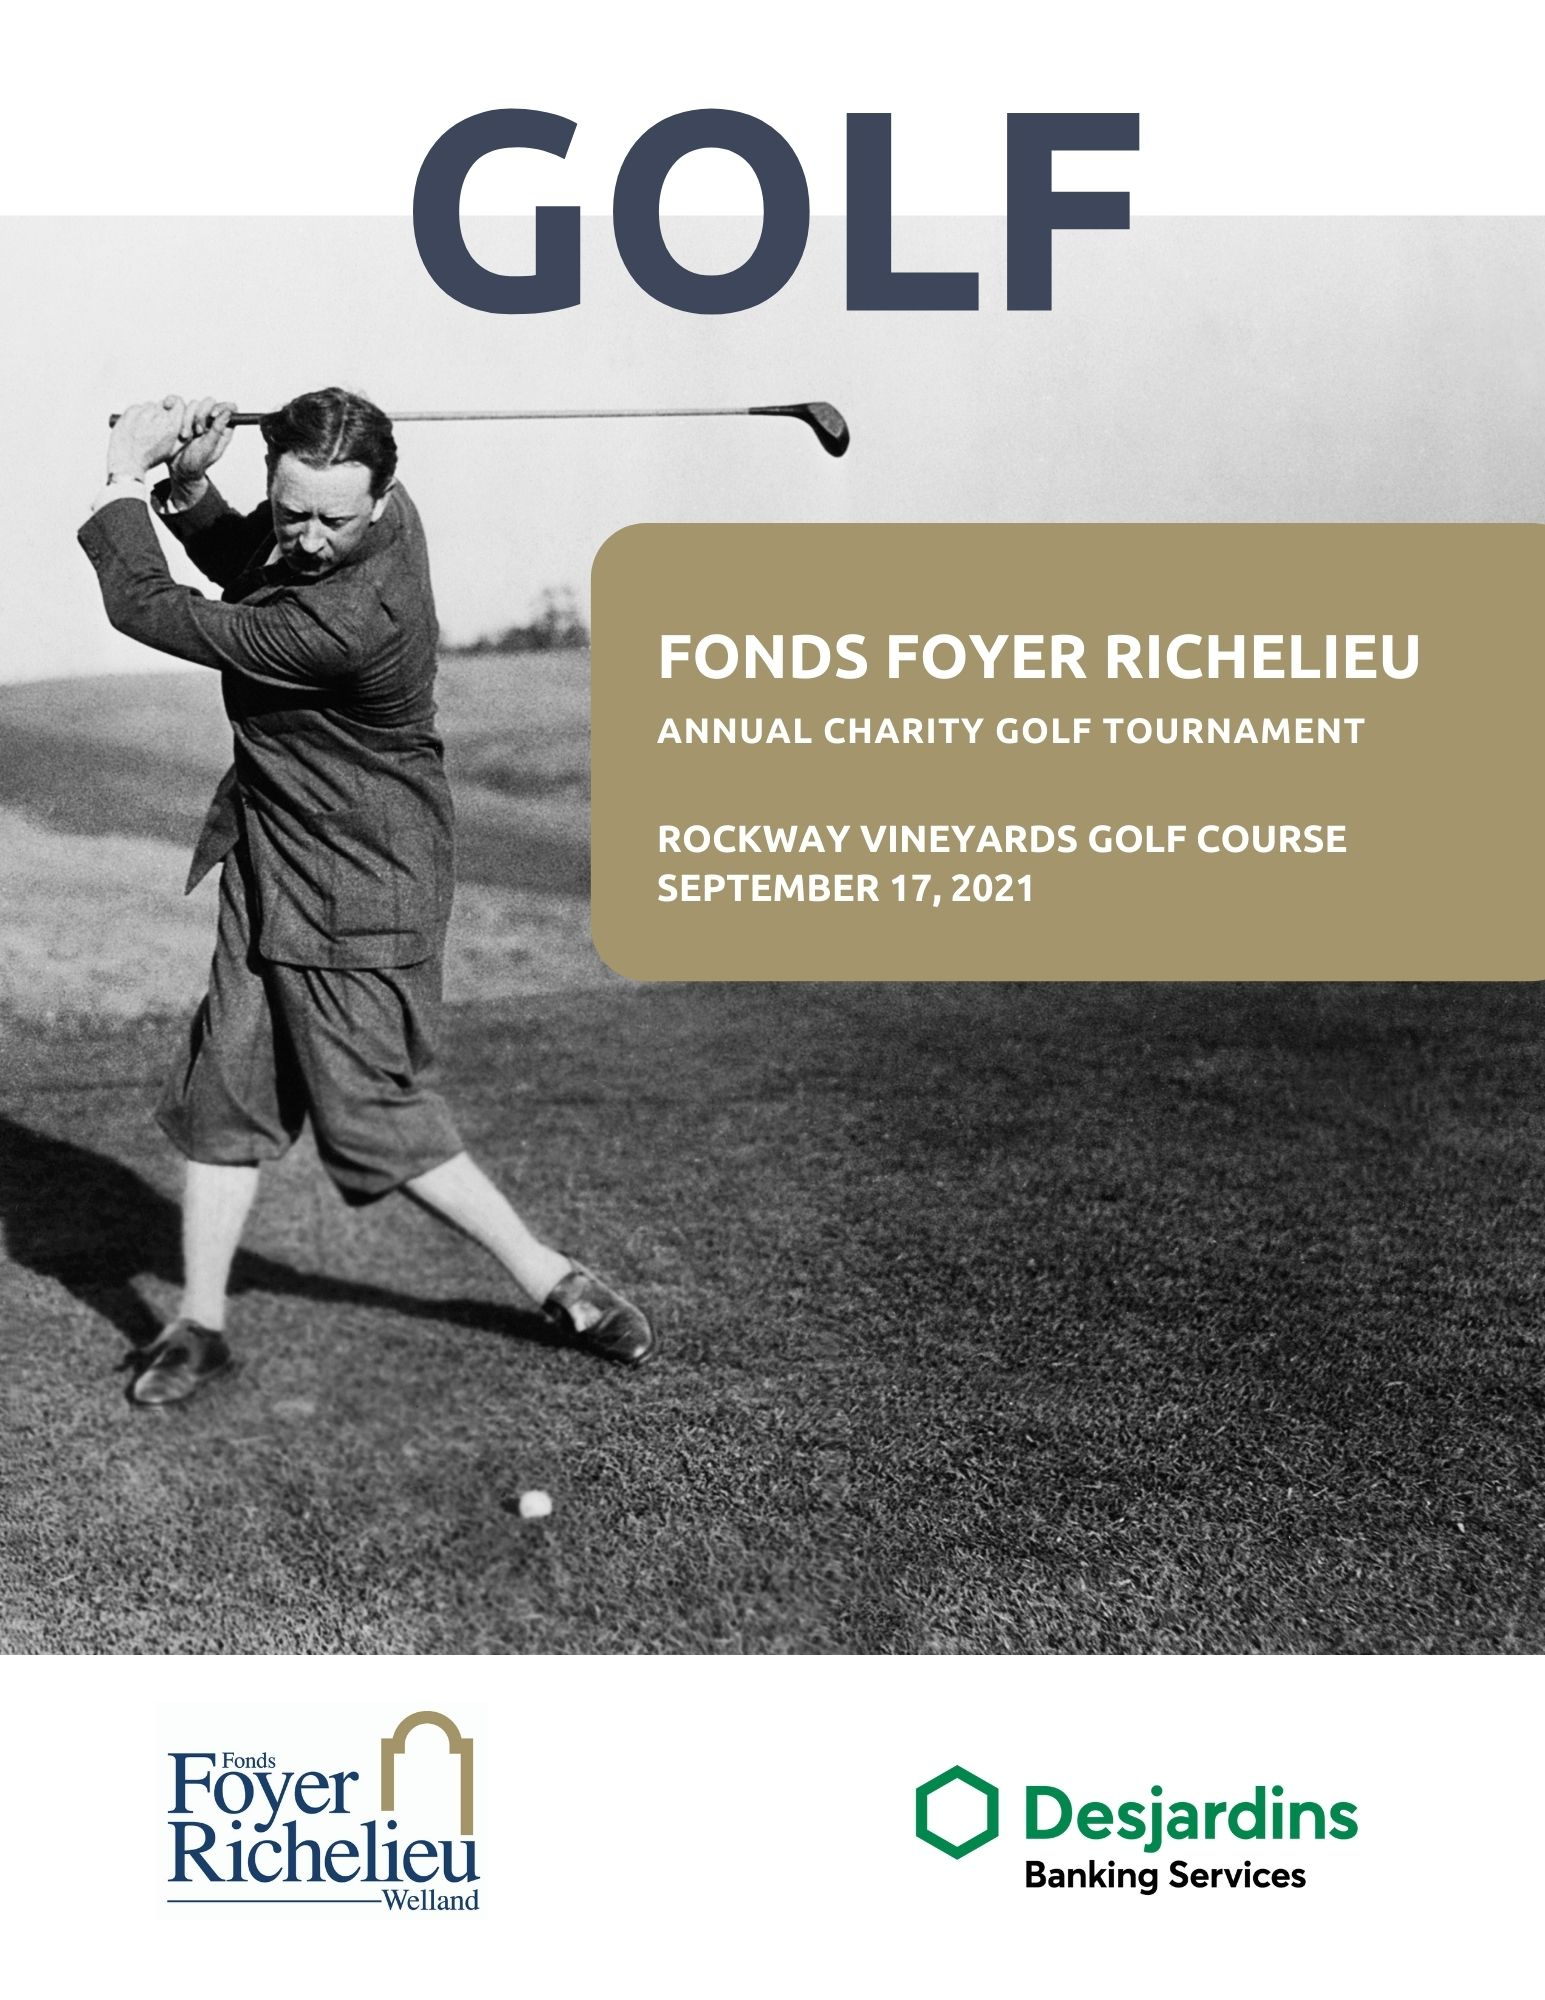 Fonds Foyer Richelieu is currently organizing its annual golf tournament